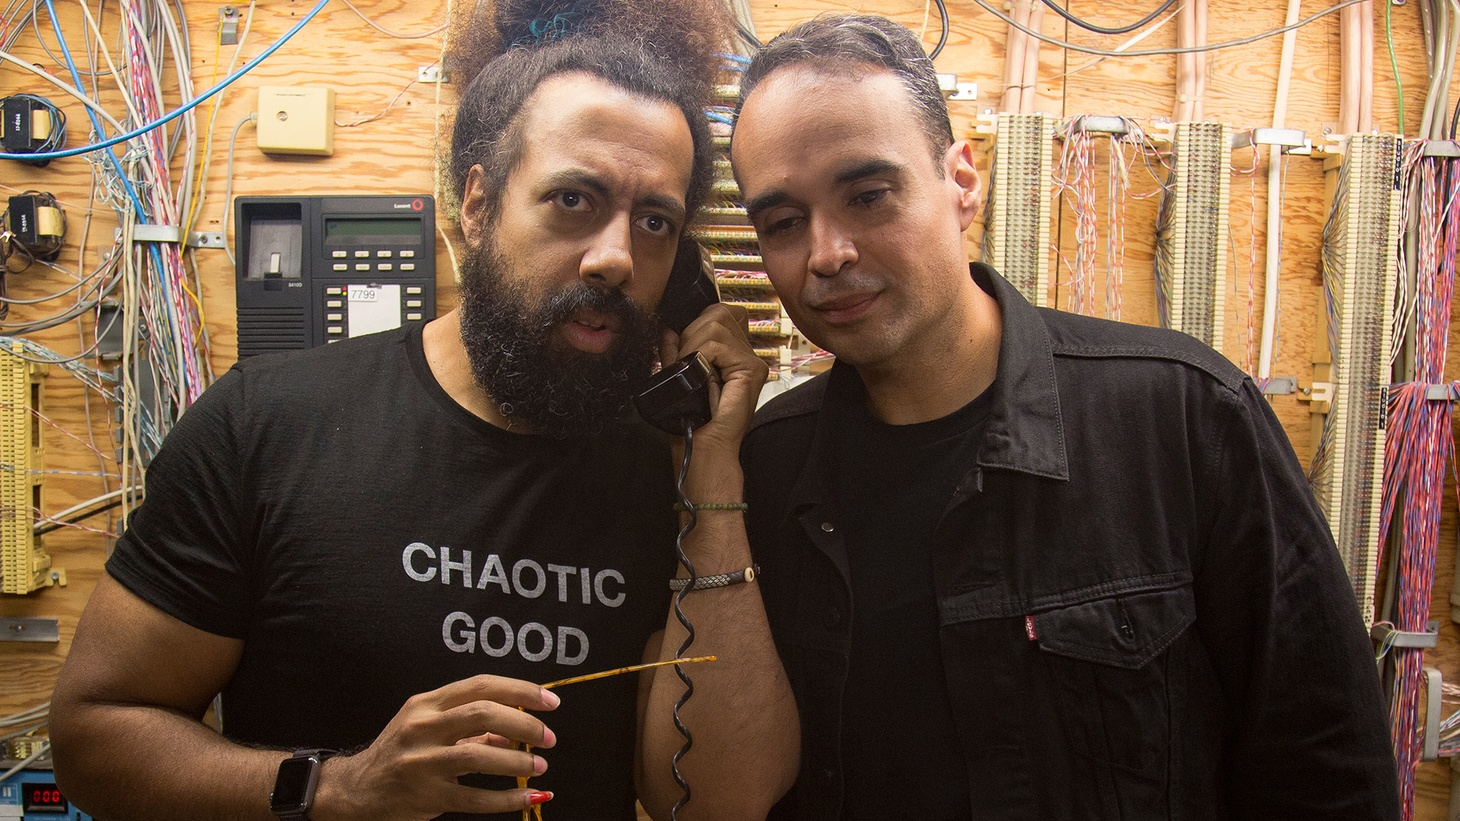 Beat-boxer, comedian, and bandleader for The Late Late Show with James Corden, Reggie Watts and DJ/electronic producer John Tejada recently made their worldwide live radio debut as Wajatta on Morning Becomes Eclectic.